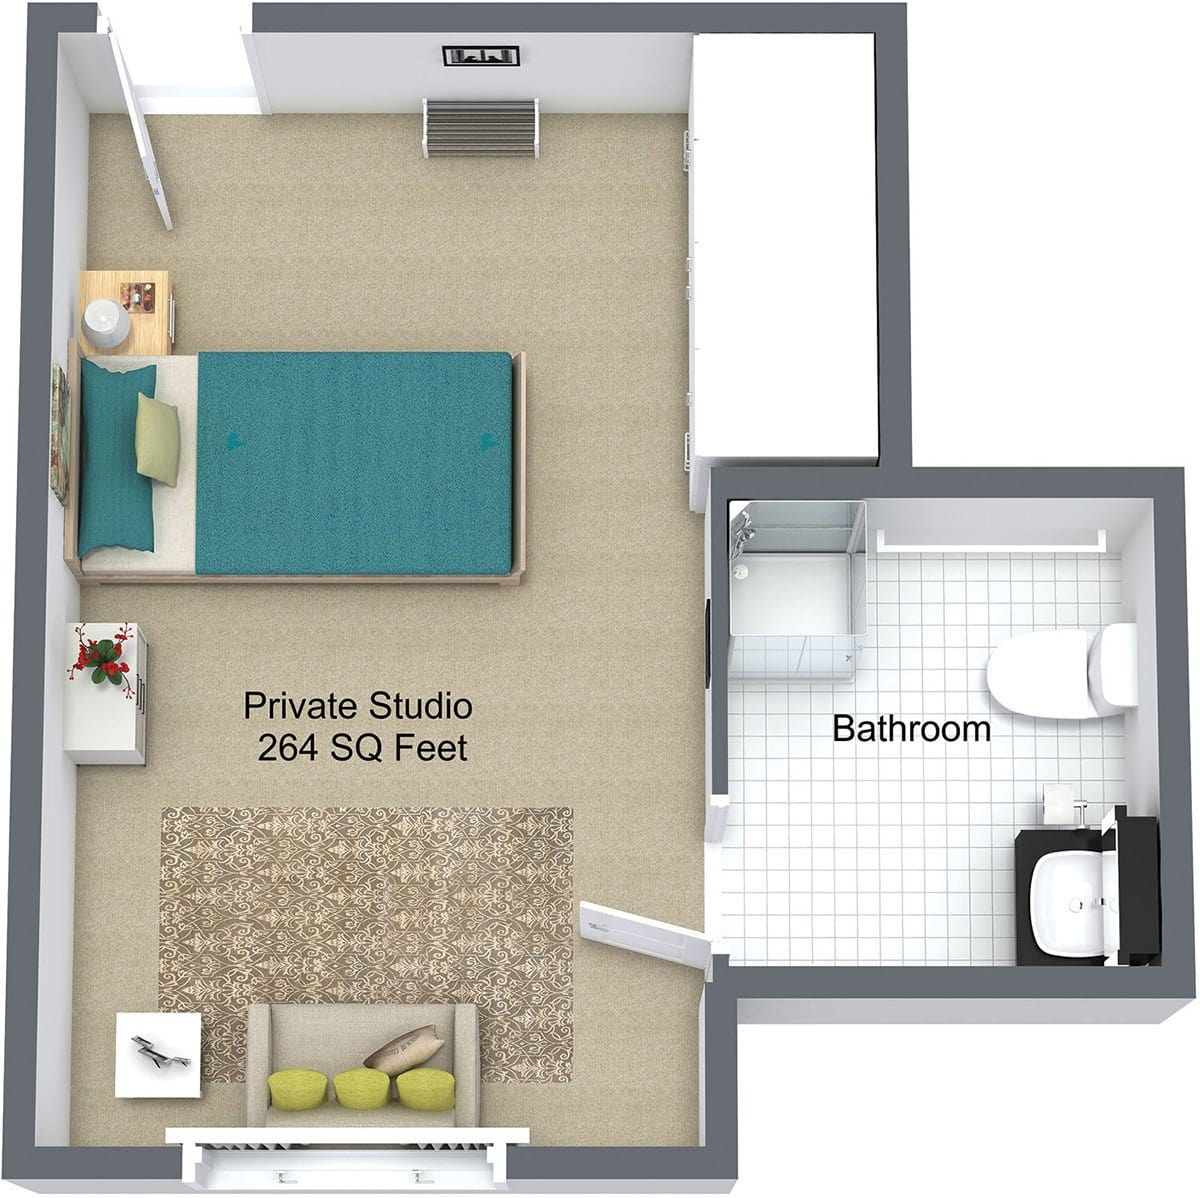 New Dawn Memory Care Floor Plan